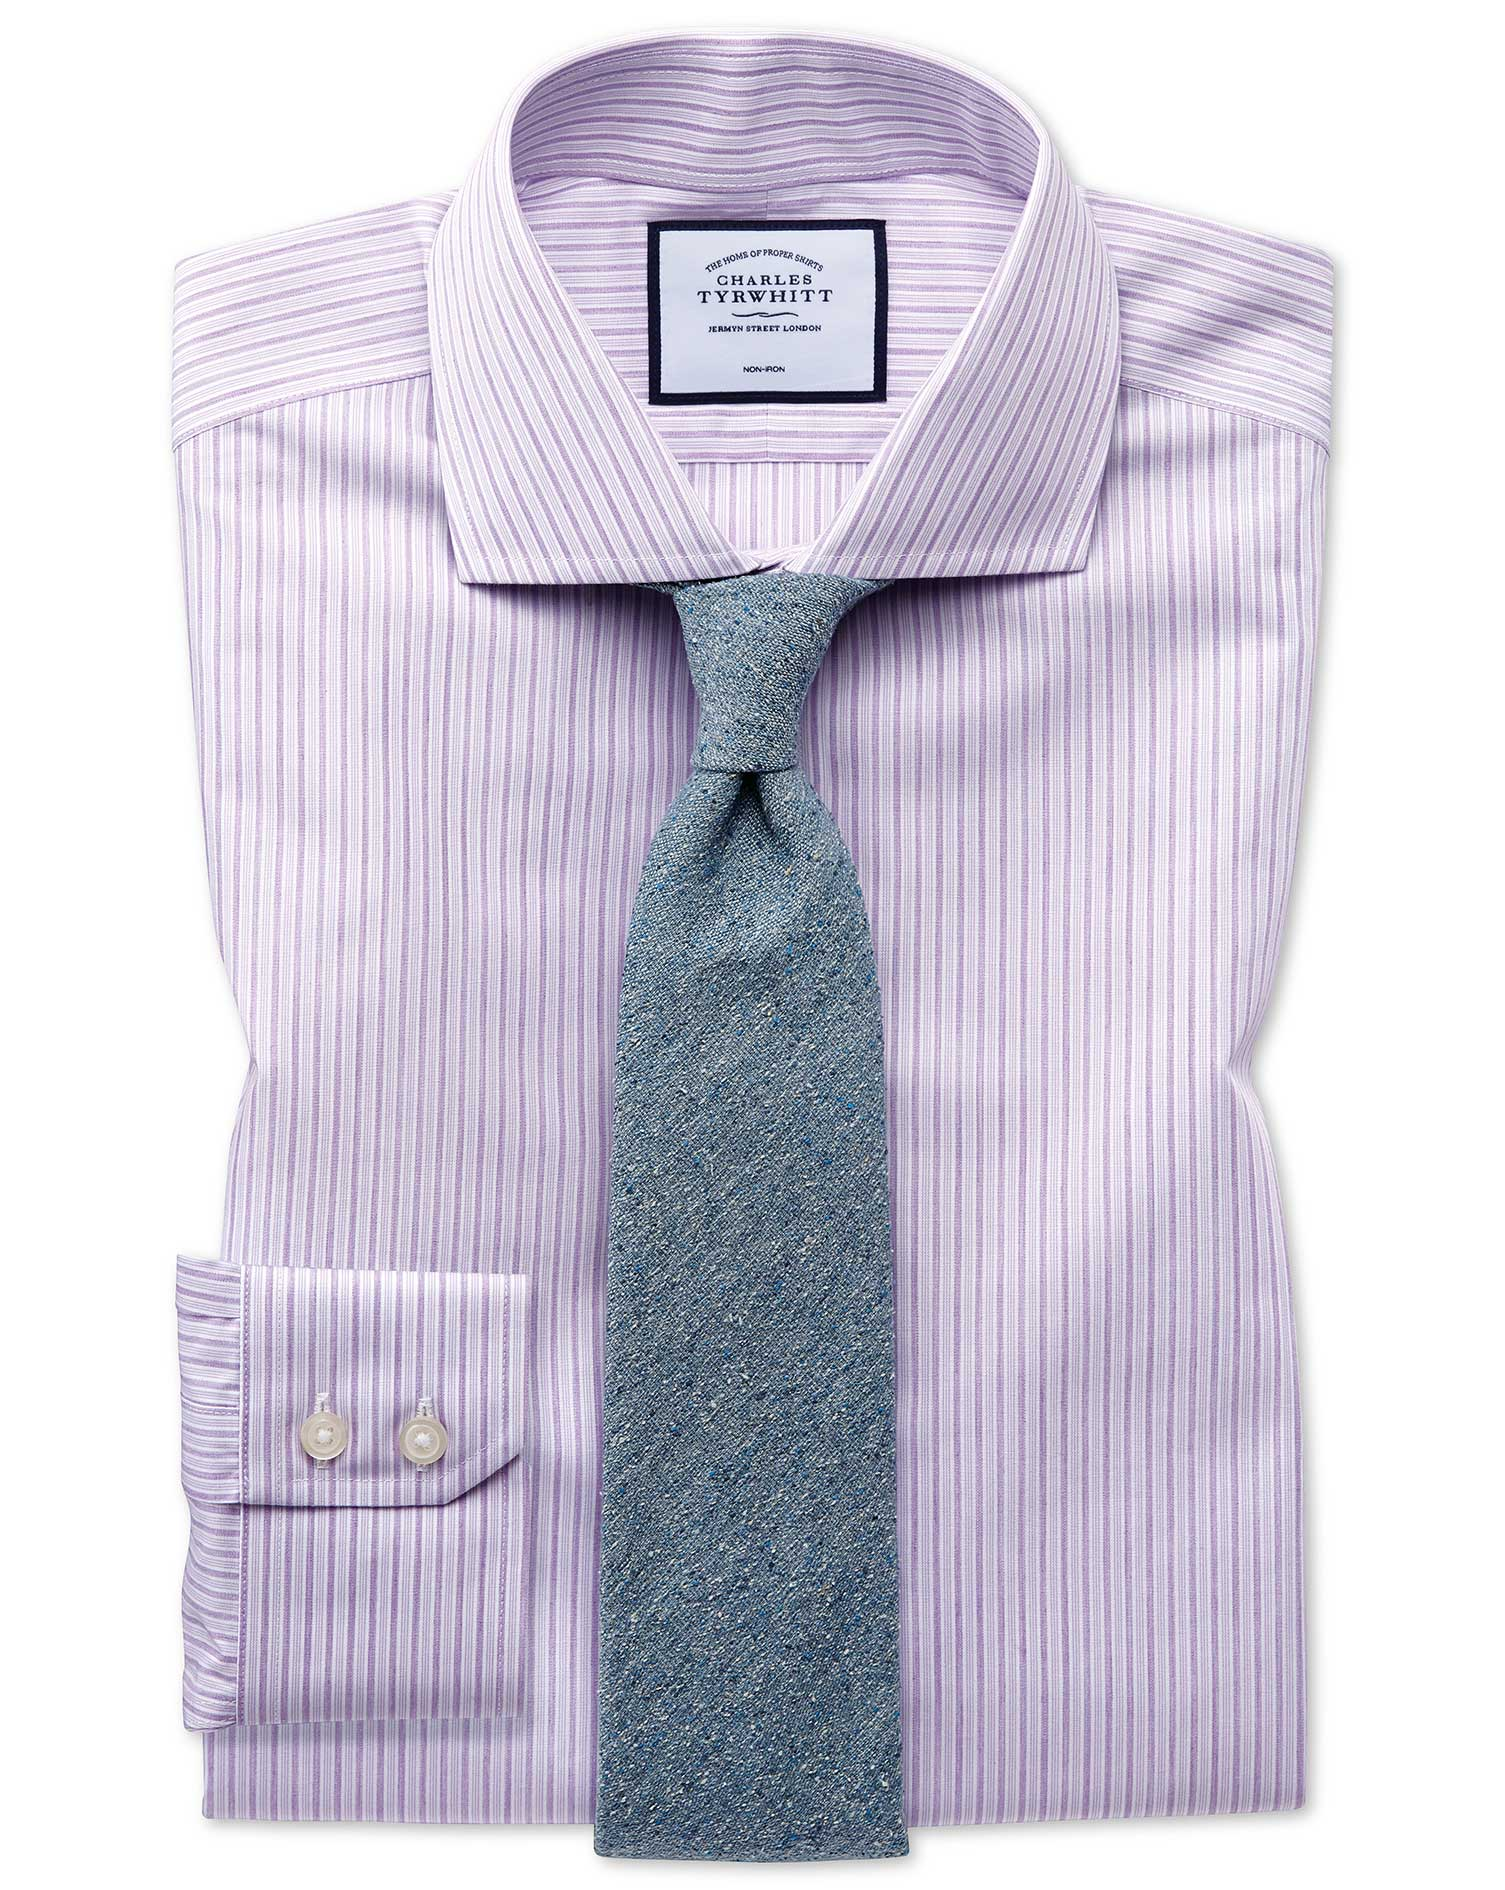 Slim Fit Non-Iron Shadow Stripe Purple Cotton Formal Shirt Single Cuff Size 16.5/33 by Charles Tyrwh